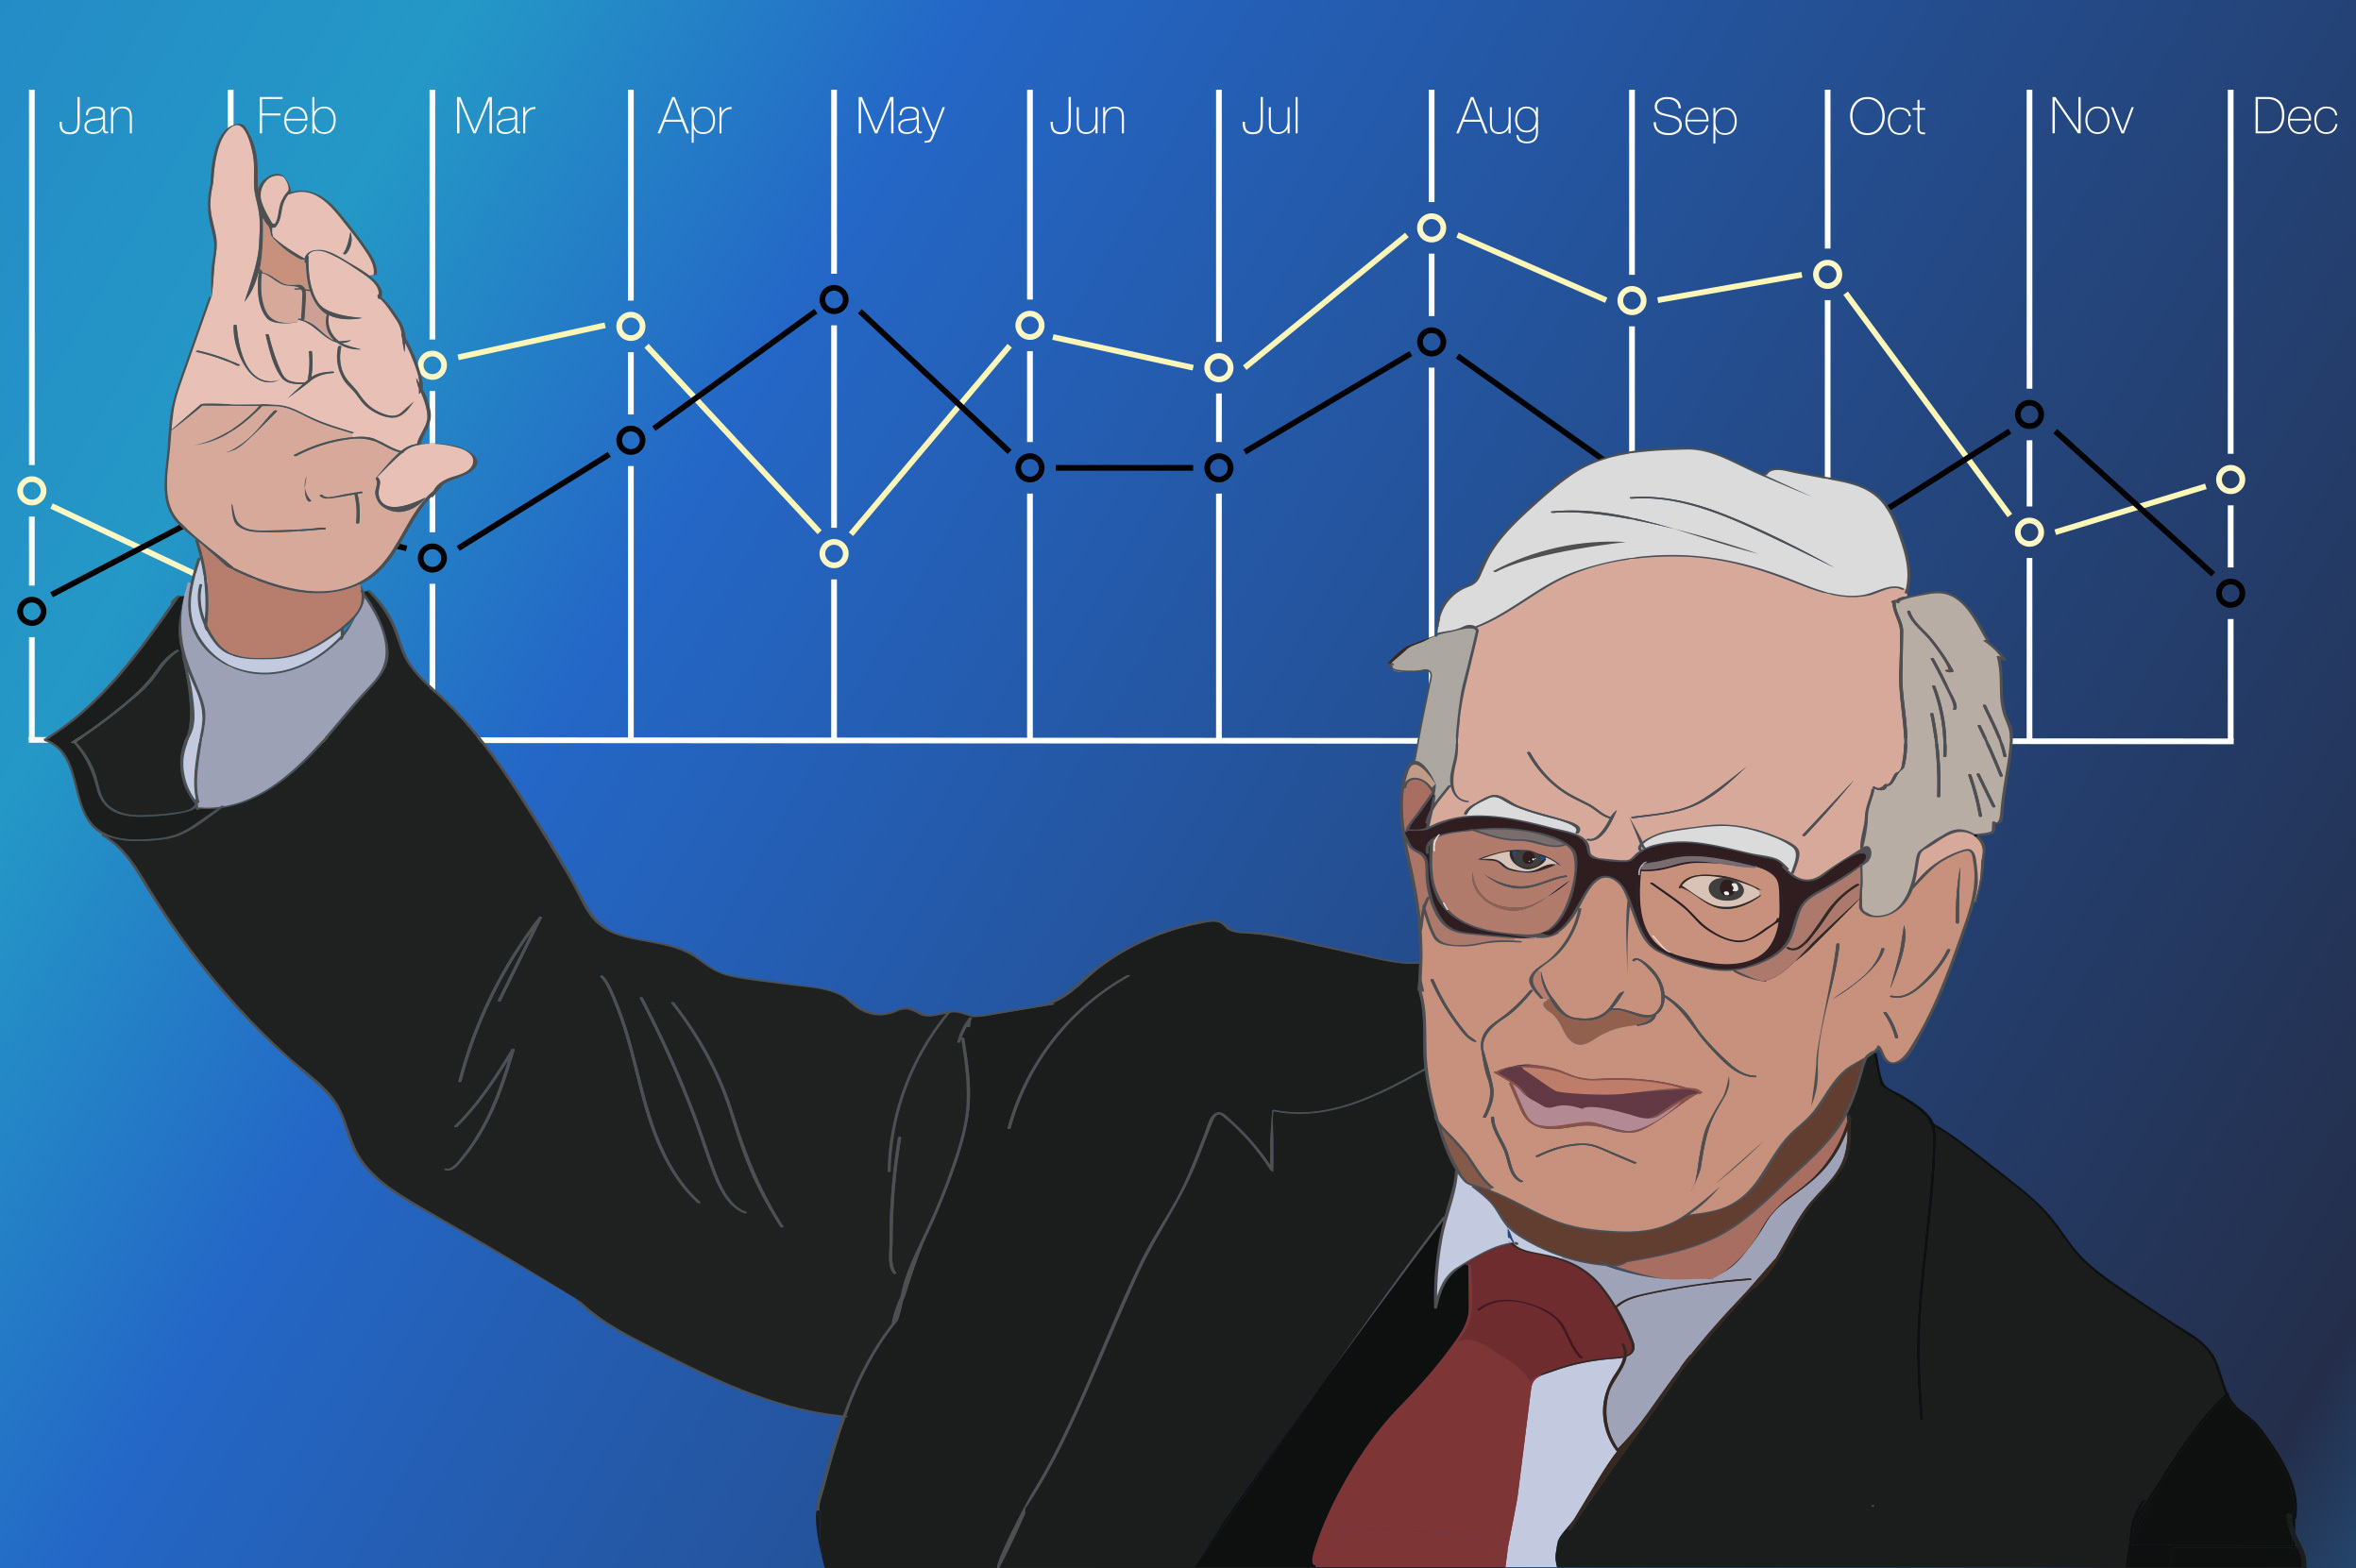 """The """"Social Inflation"""" Excuse: Why Warren Buffett was Wrong in 1975 and Insurers Are Wrong Now In Shirking Coverage of Opioid Litigation and Other Public Nuisance Shakedowns - Miller Friel Insurance Coverage Blog"""